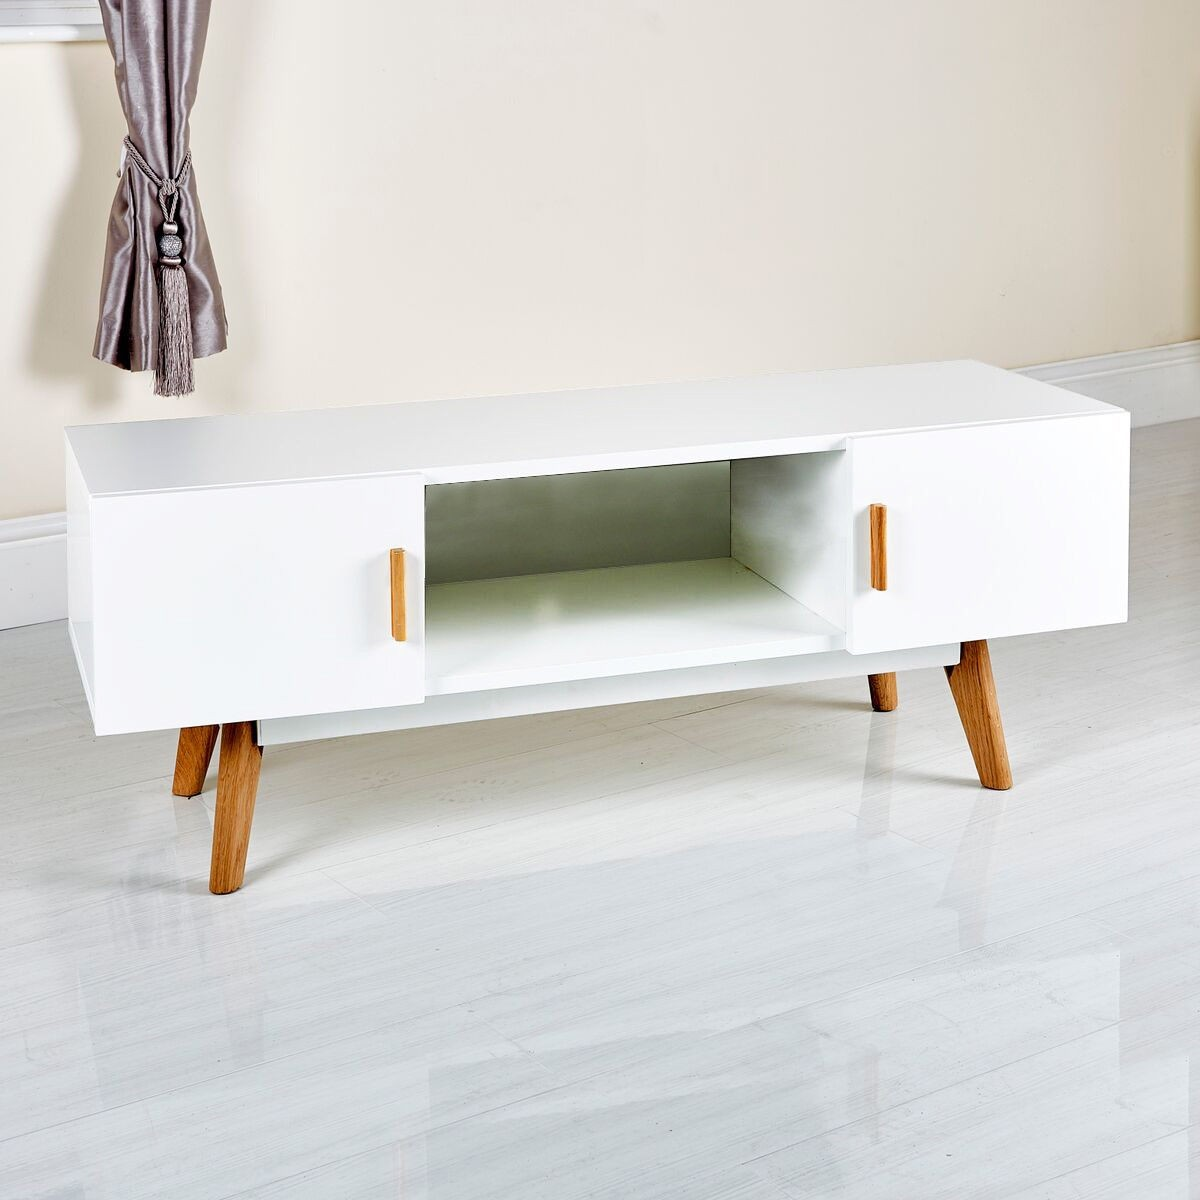 Stylish white modern tv stand from abreo abreo home furniture Home furniture tv stands